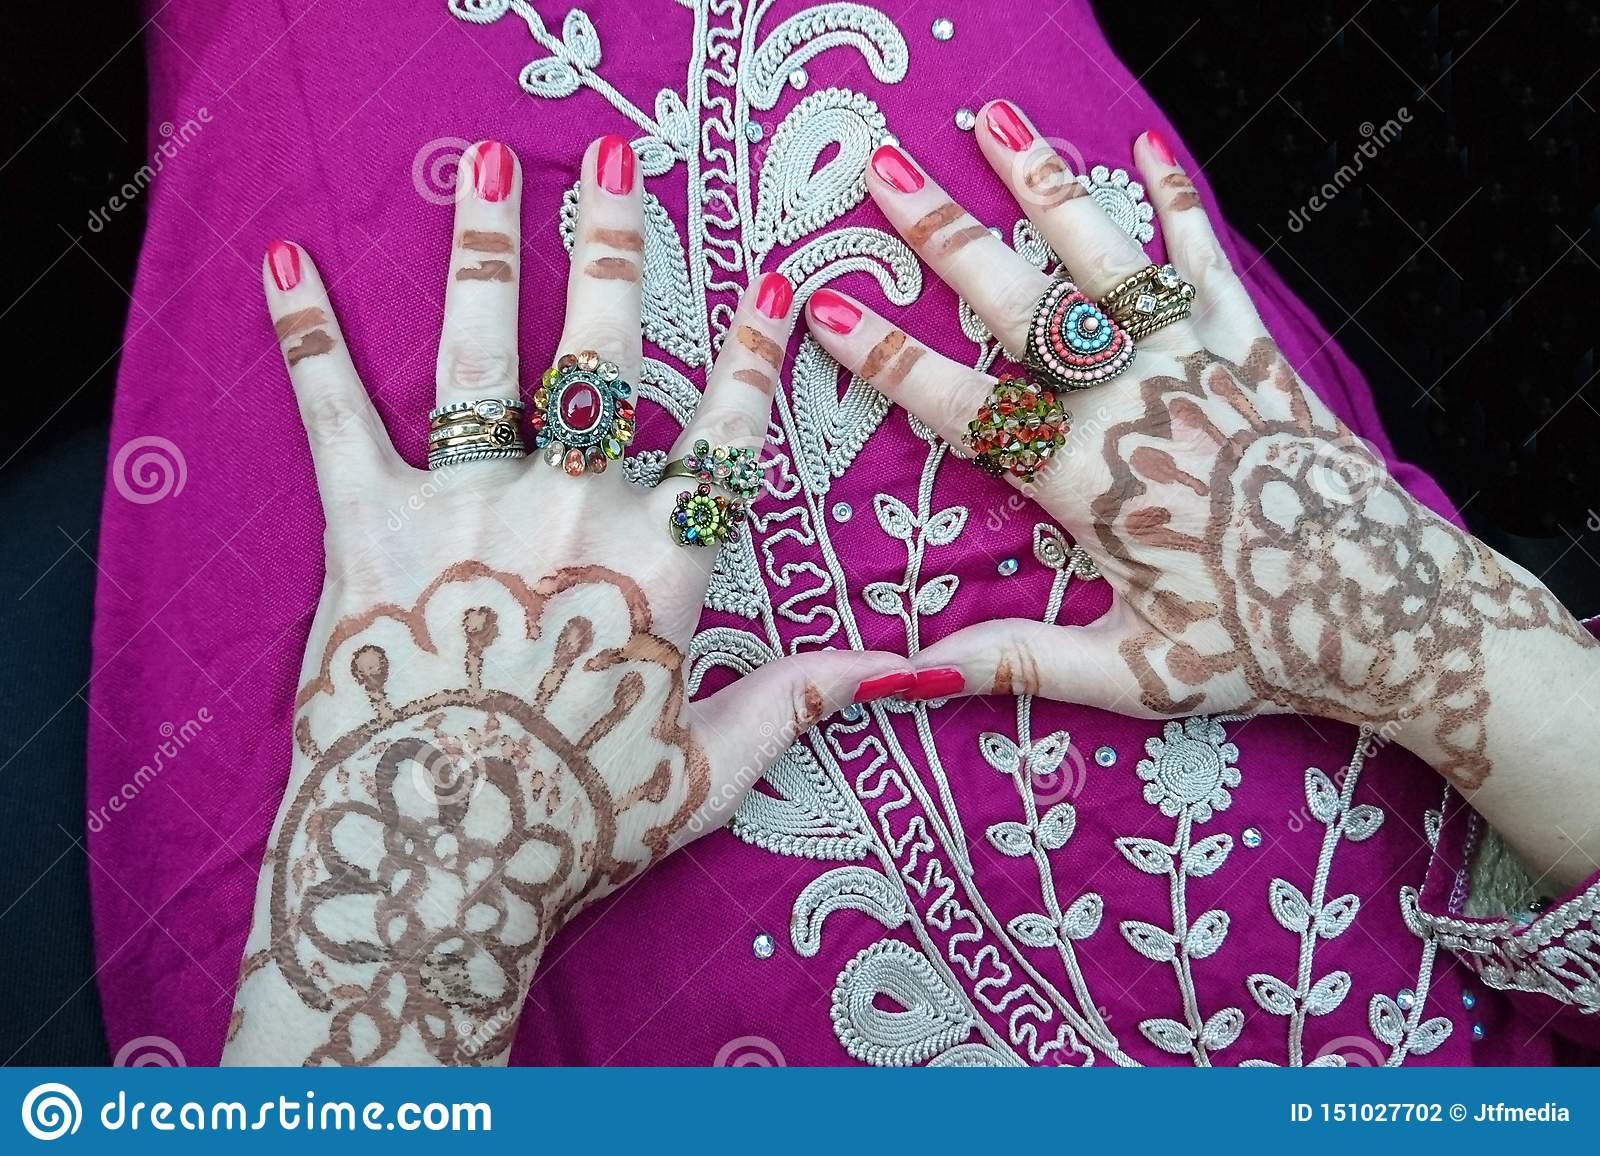 Wedding preparations: With henna and rings decorated hands on the lap of a woman in a Moroccan dress